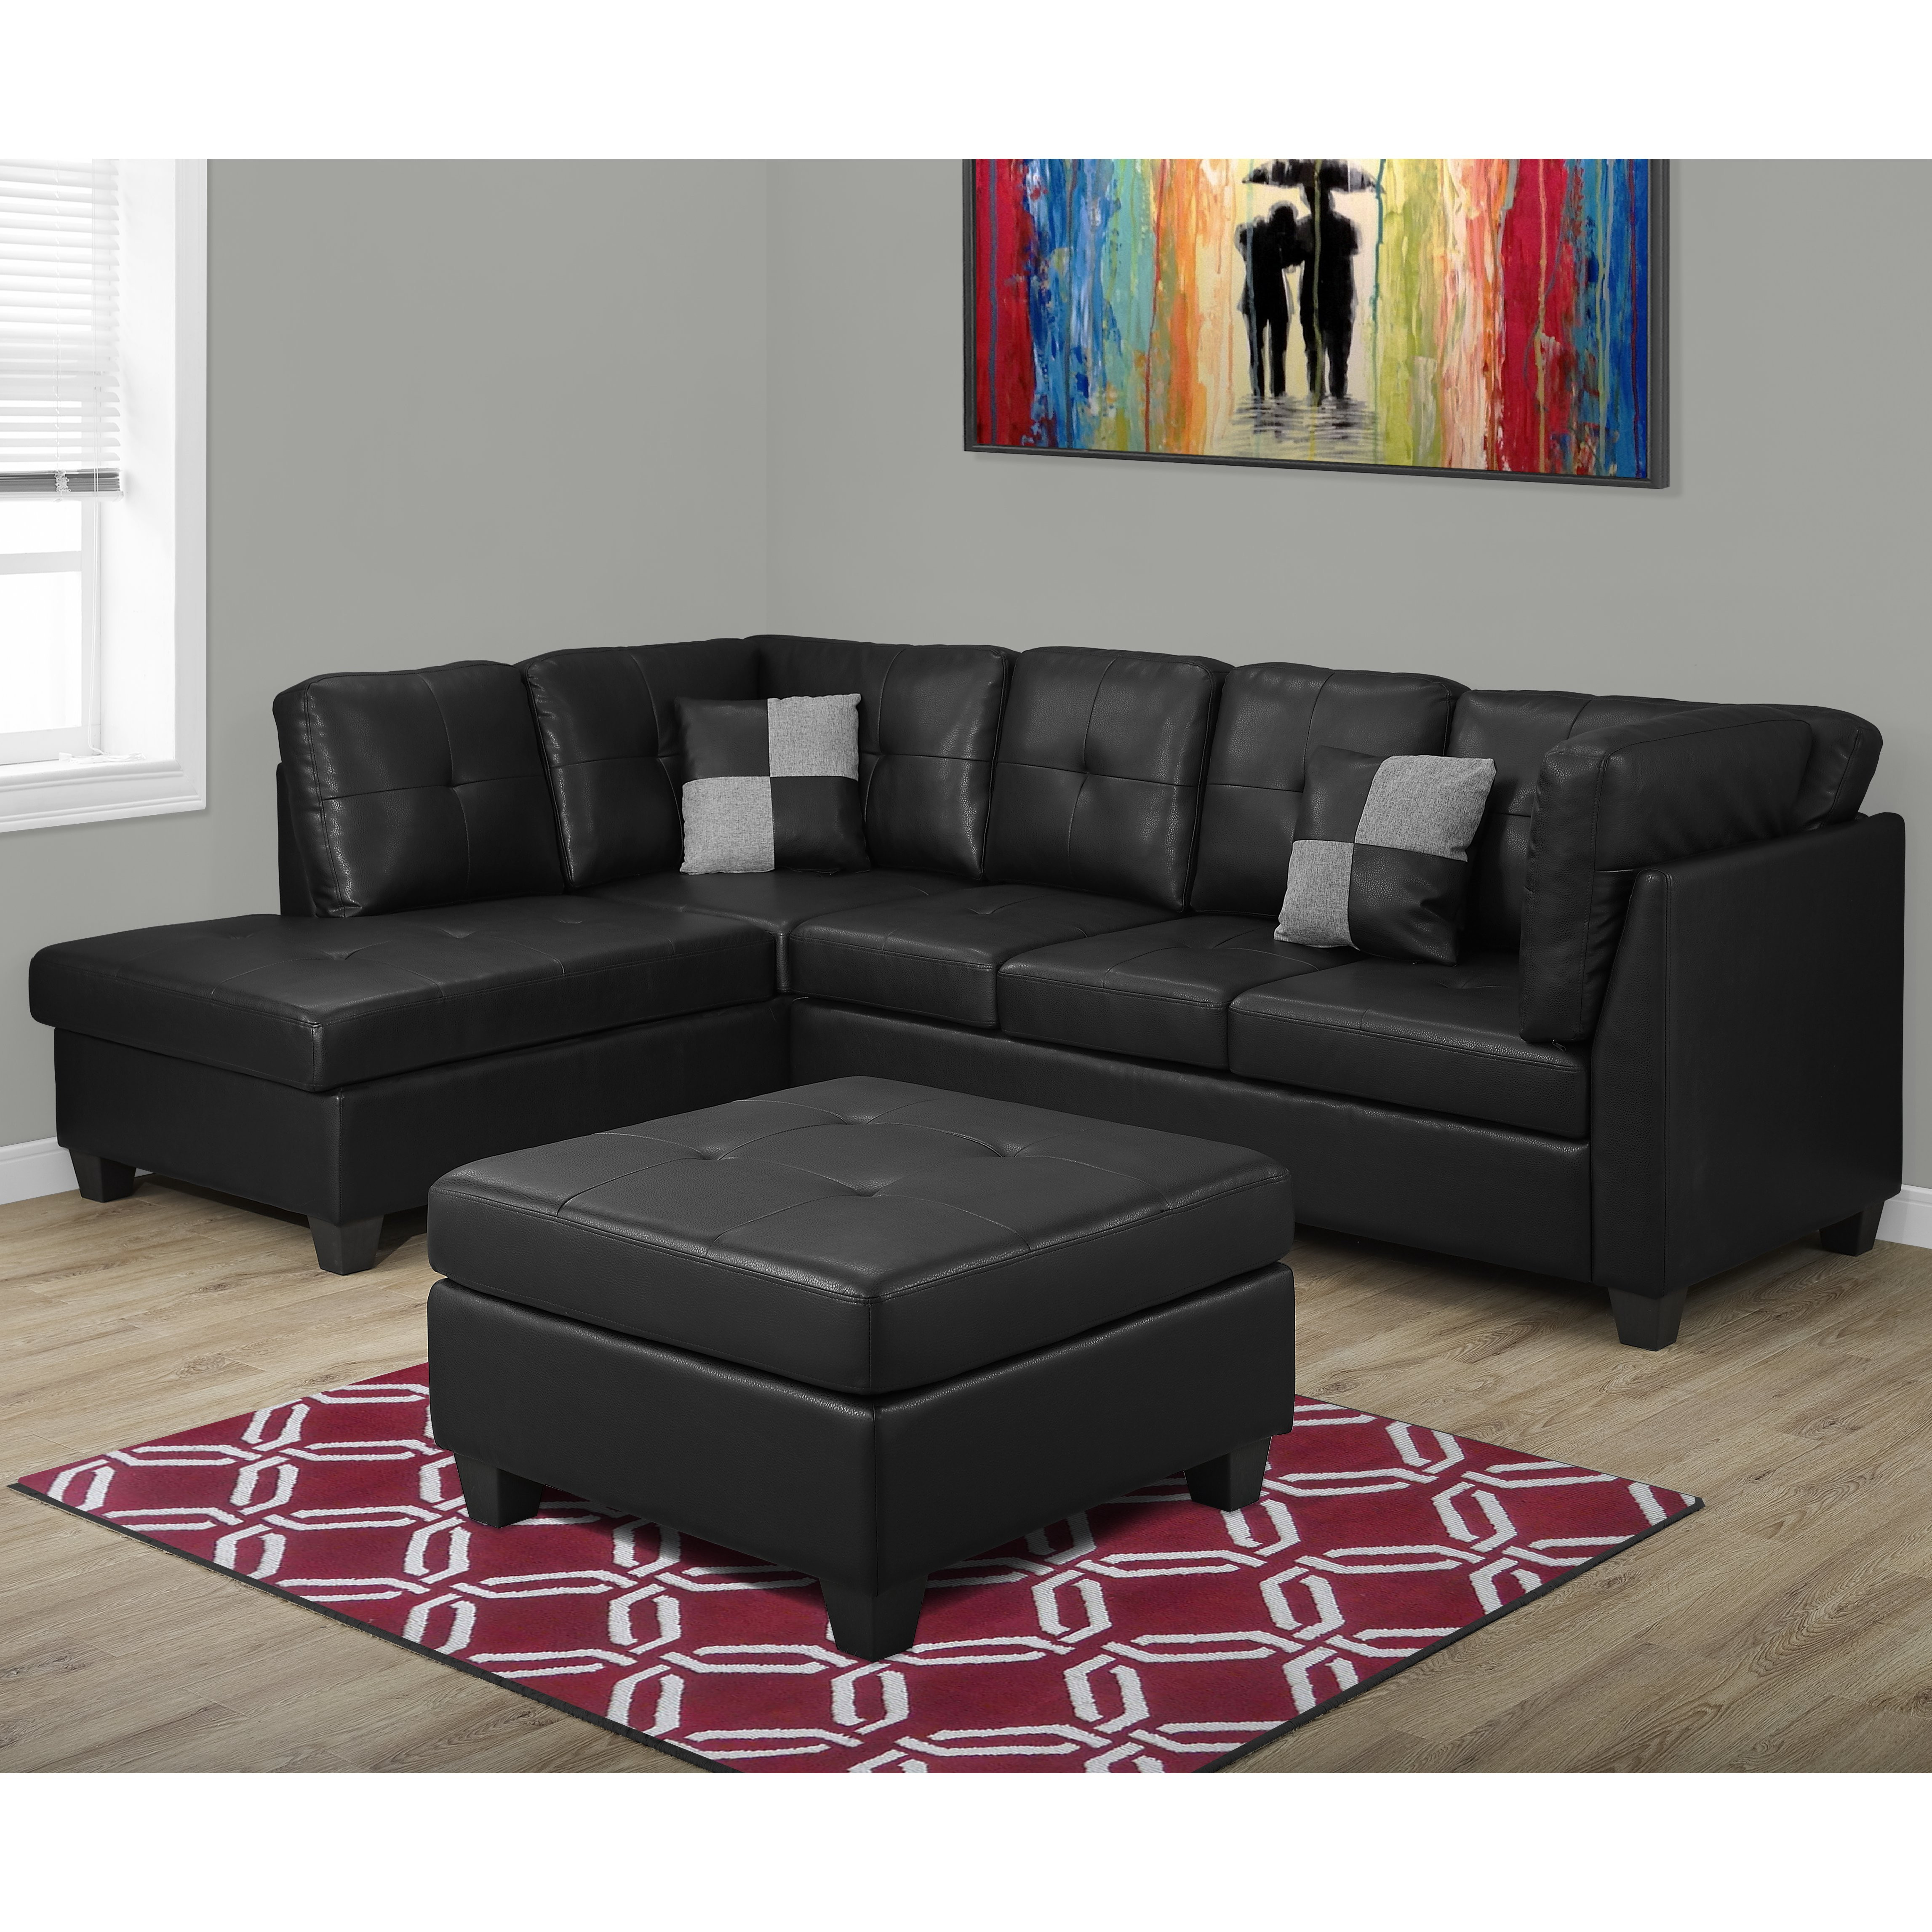 Best ideas about Wayfair Sectional Sofa . Save or Pin Monarch Specialties Inc Sofa Sectional Now.